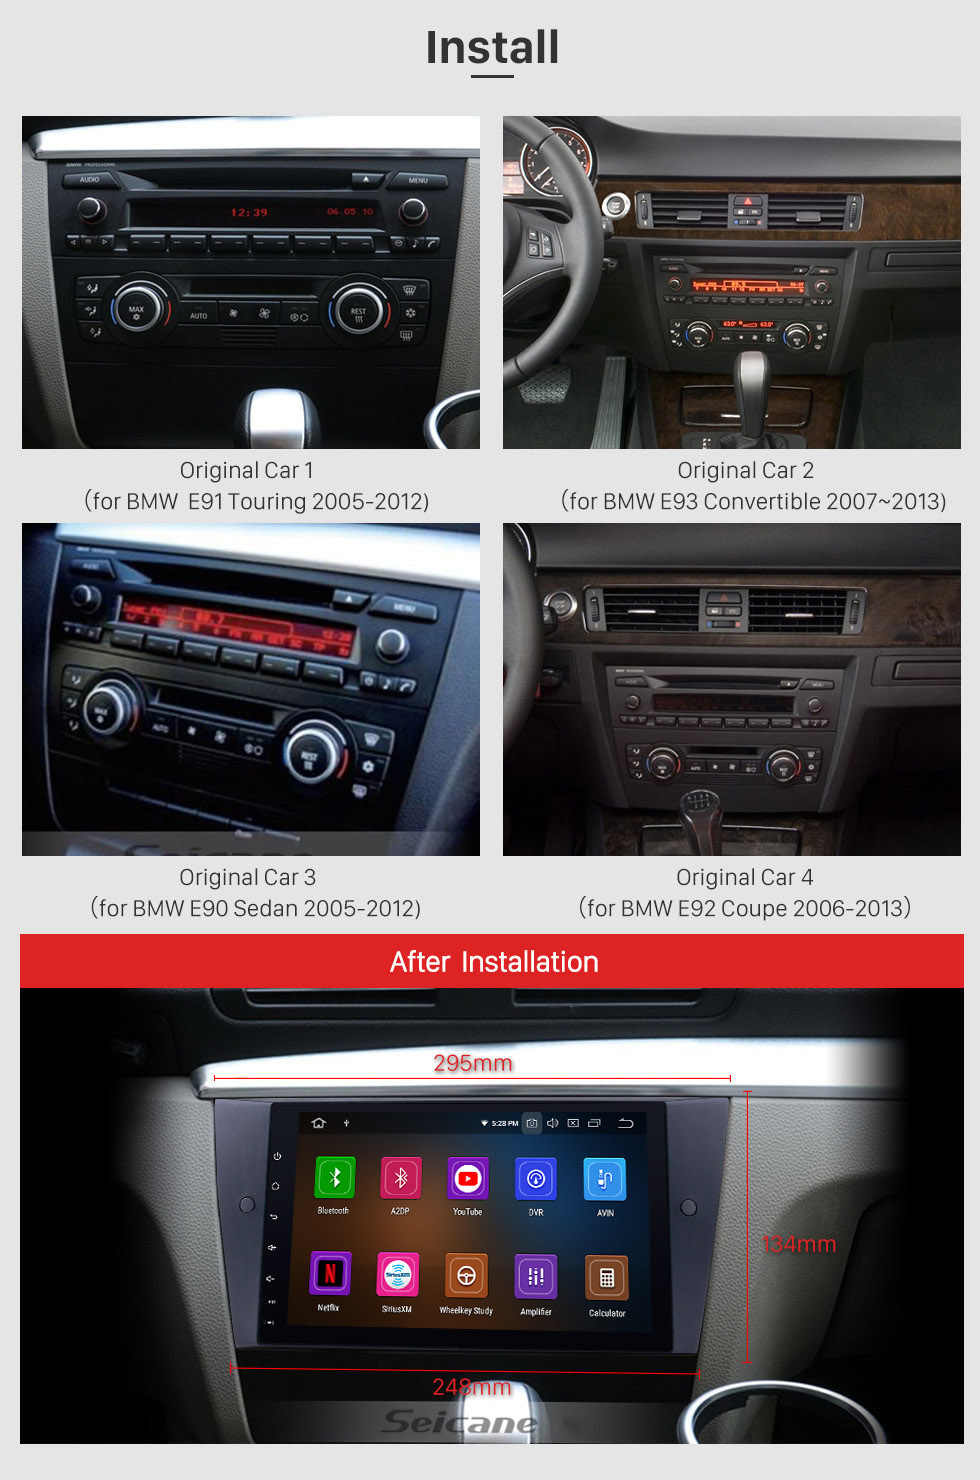 Seicane Android 10.0 HD Touch Screen Radio GPS Navigation System for 2005-2012 BMW 3 Series E90 E91 E92 E93 316i 318i 320i 320si 323i 325i 328i 330i 335i 335is M3 316d 318d 320d 325d 330d 335d with WiFi OBD2 DVR